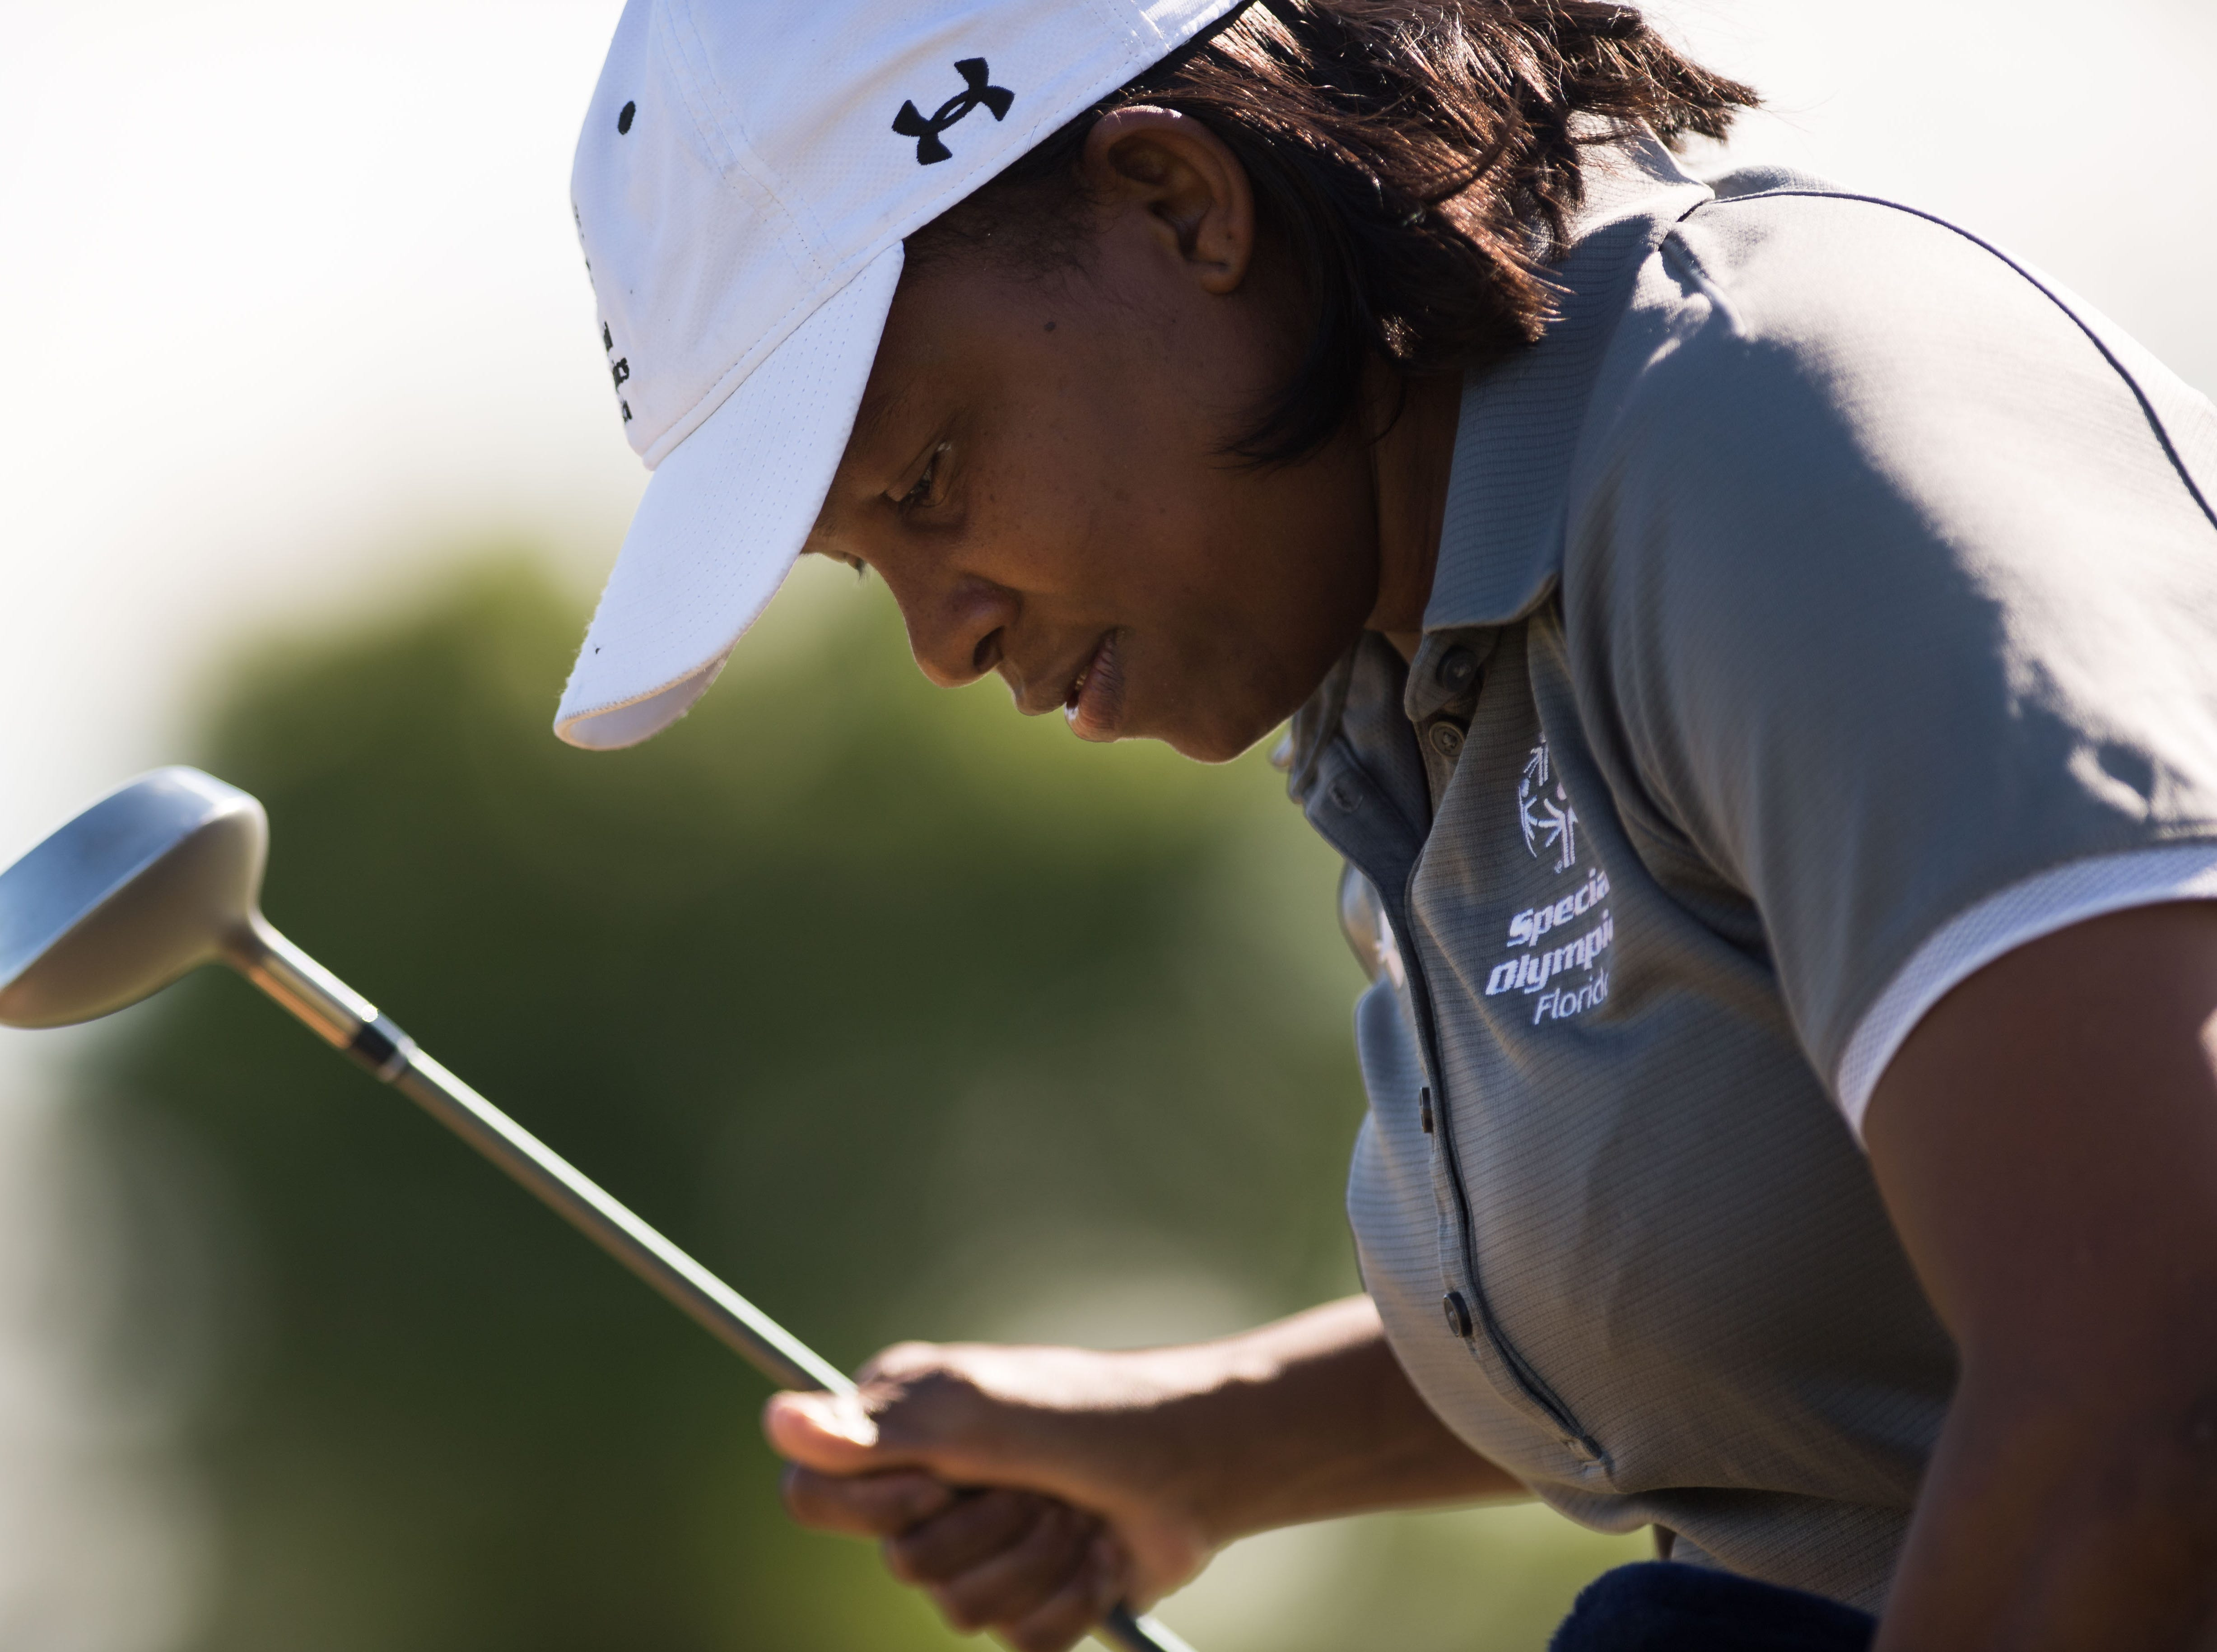 Kenyatta Johnson, of Fort Pierce, practices her driving and putting at Fairwinds Golf Course on Feb. 28, 2019, in Fort Pierce. Johnson will be traveling to Abu Dhabi, United Arab Emirates, to compete in the 2019 Special Olympics World Games, which begin March 14.